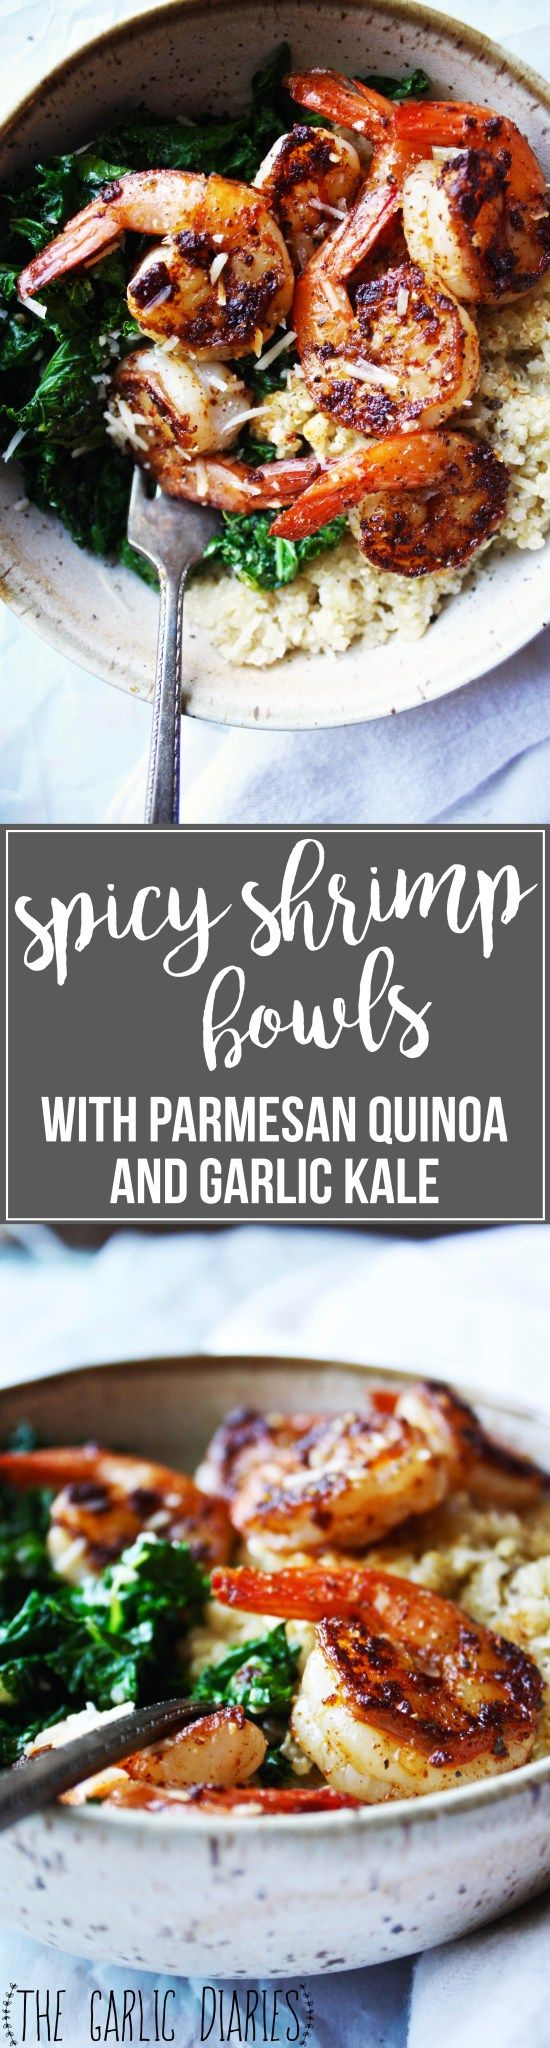 Spicy Shrimp Bowls with Parmesan Quinoa and Garlic Kale [21 Day Fix friendly] - These healthy bowls are quick and easy to make, and they pack SO much fantastic flavor! It's a winner all around! #21dayfix #glutenfree TheGarlicDiaries.com